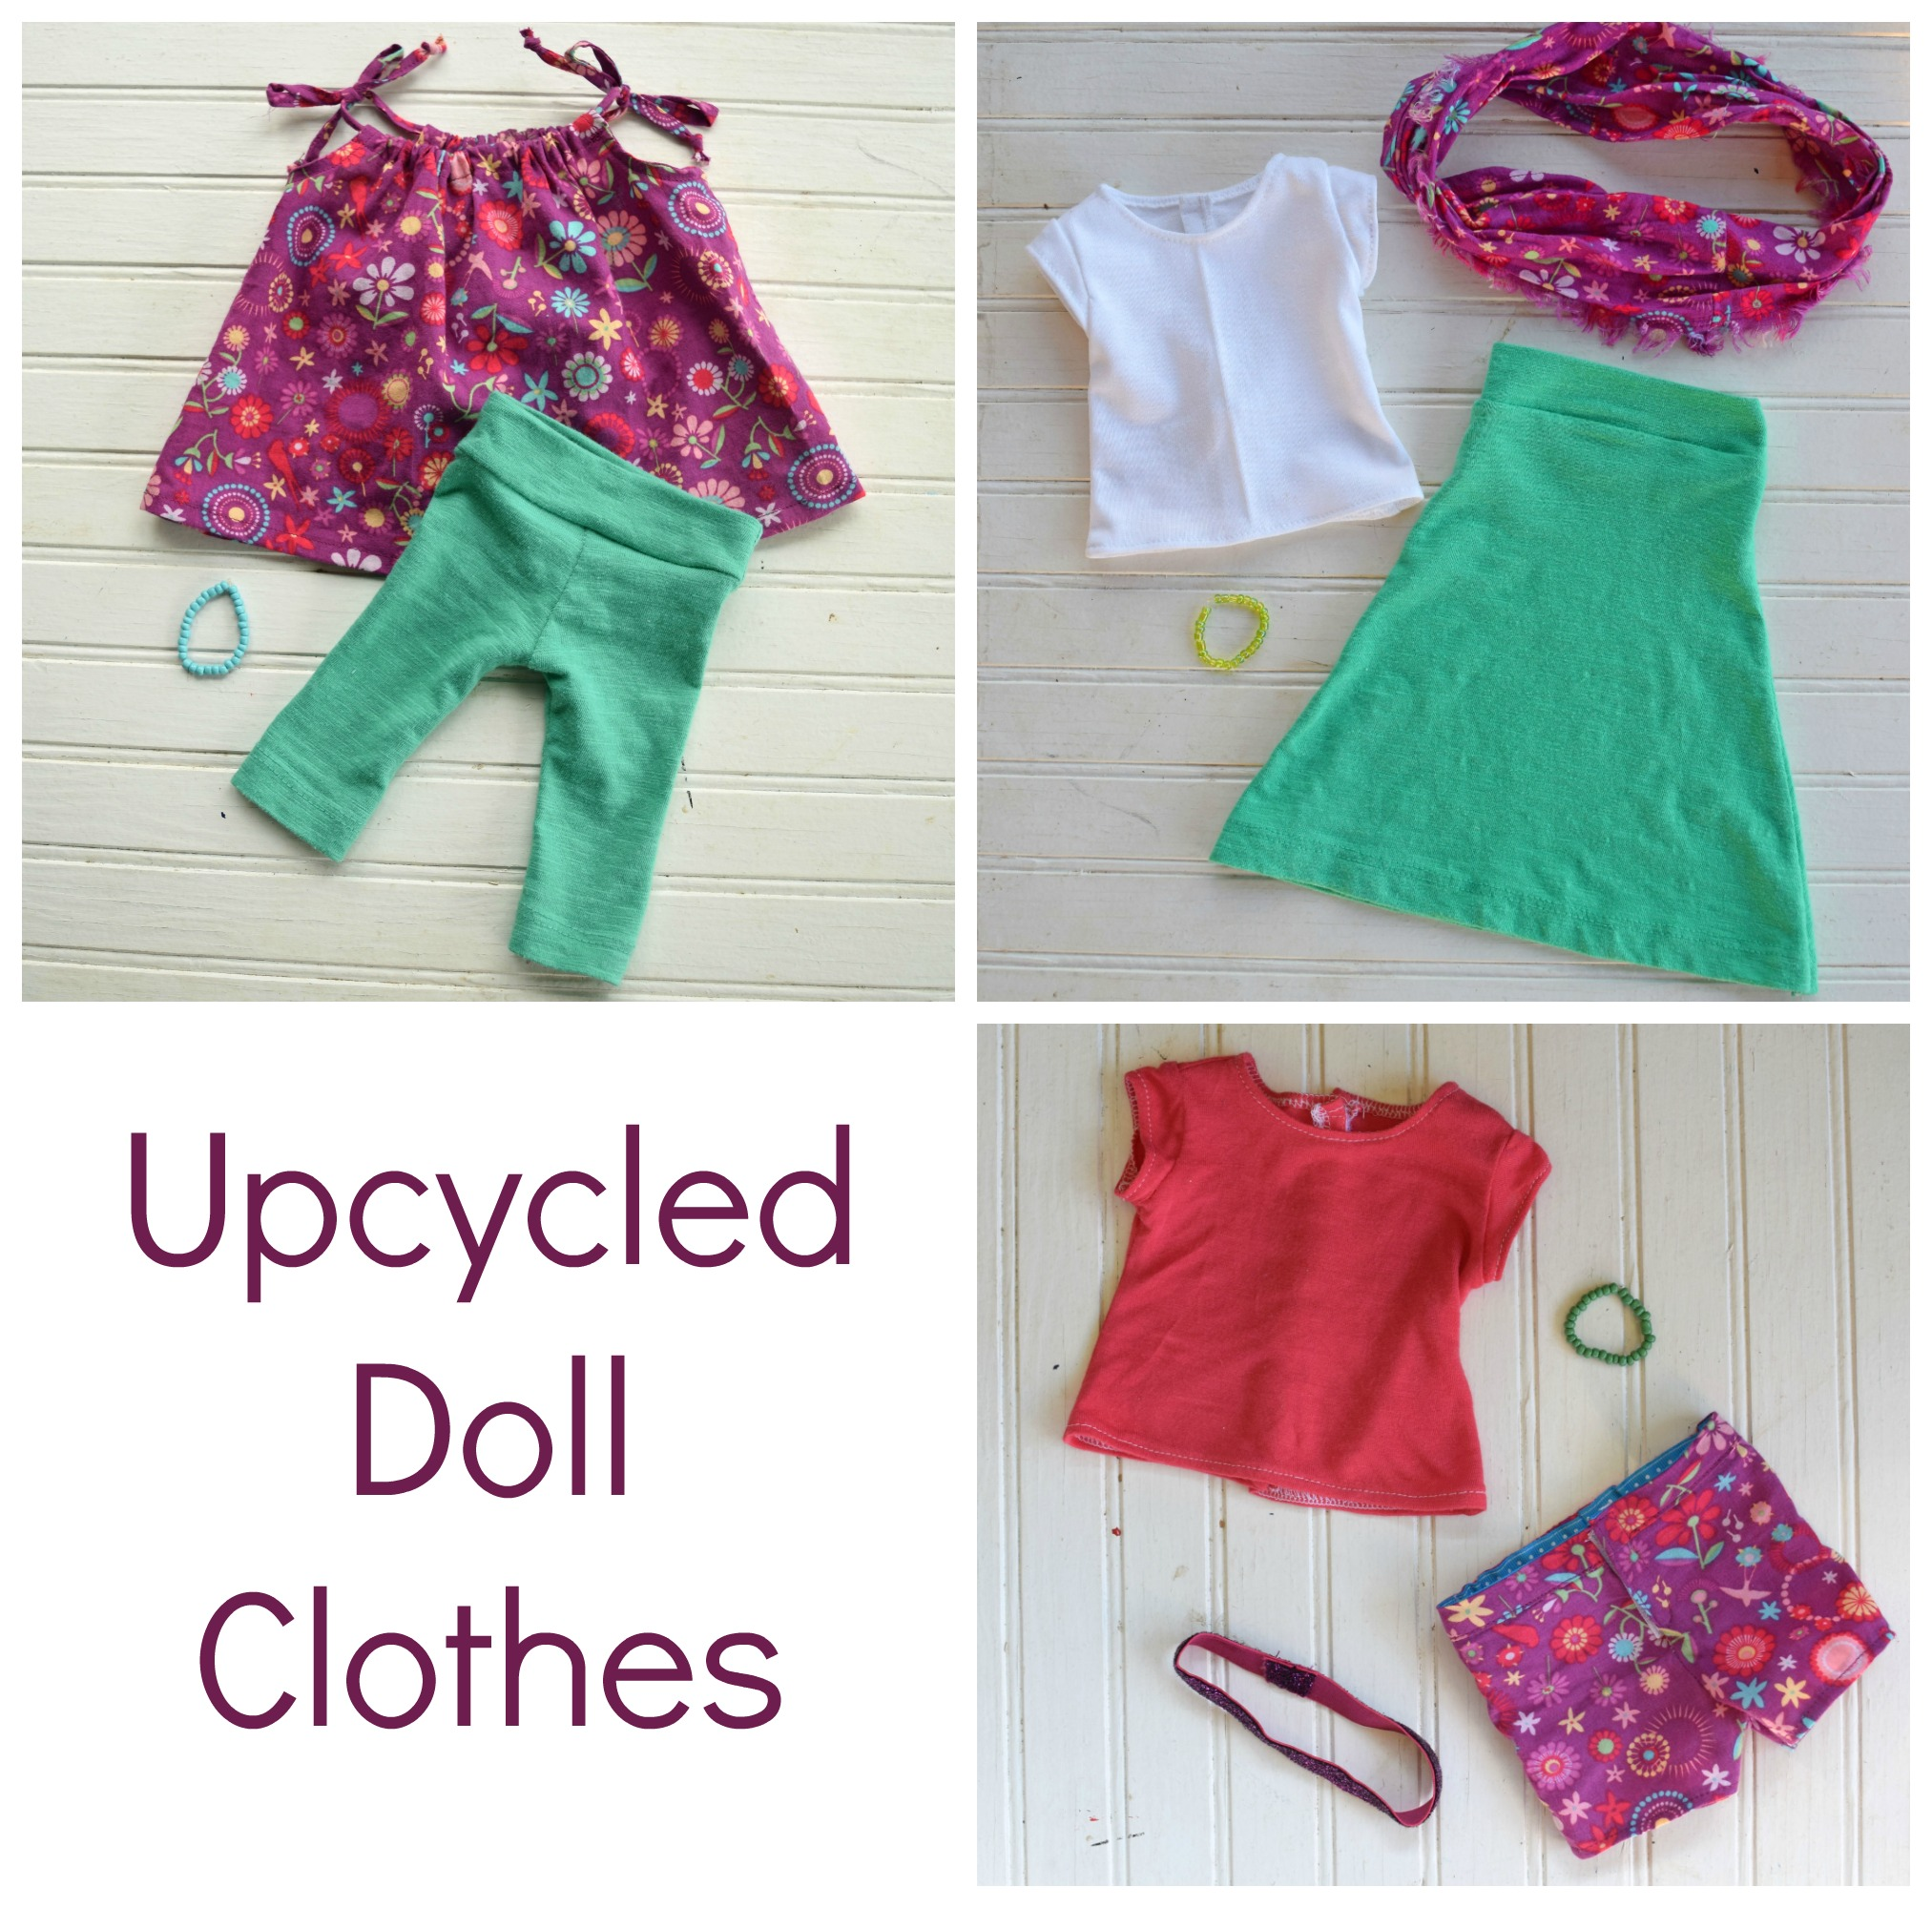 Upcycled Doll Clothes